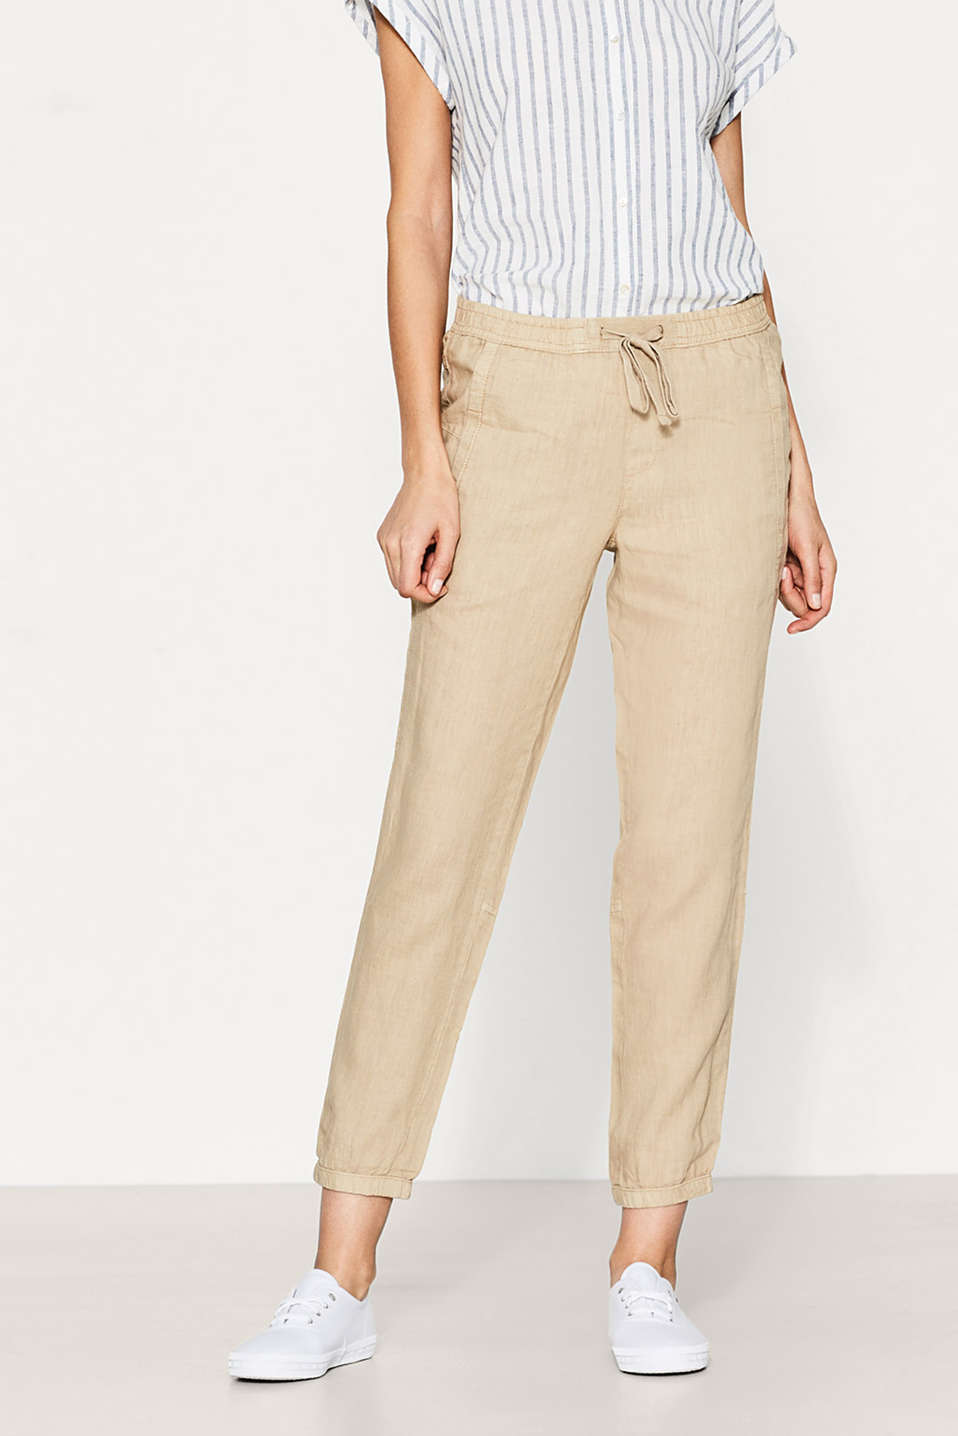 Casual cuffed trousers in 100% linen